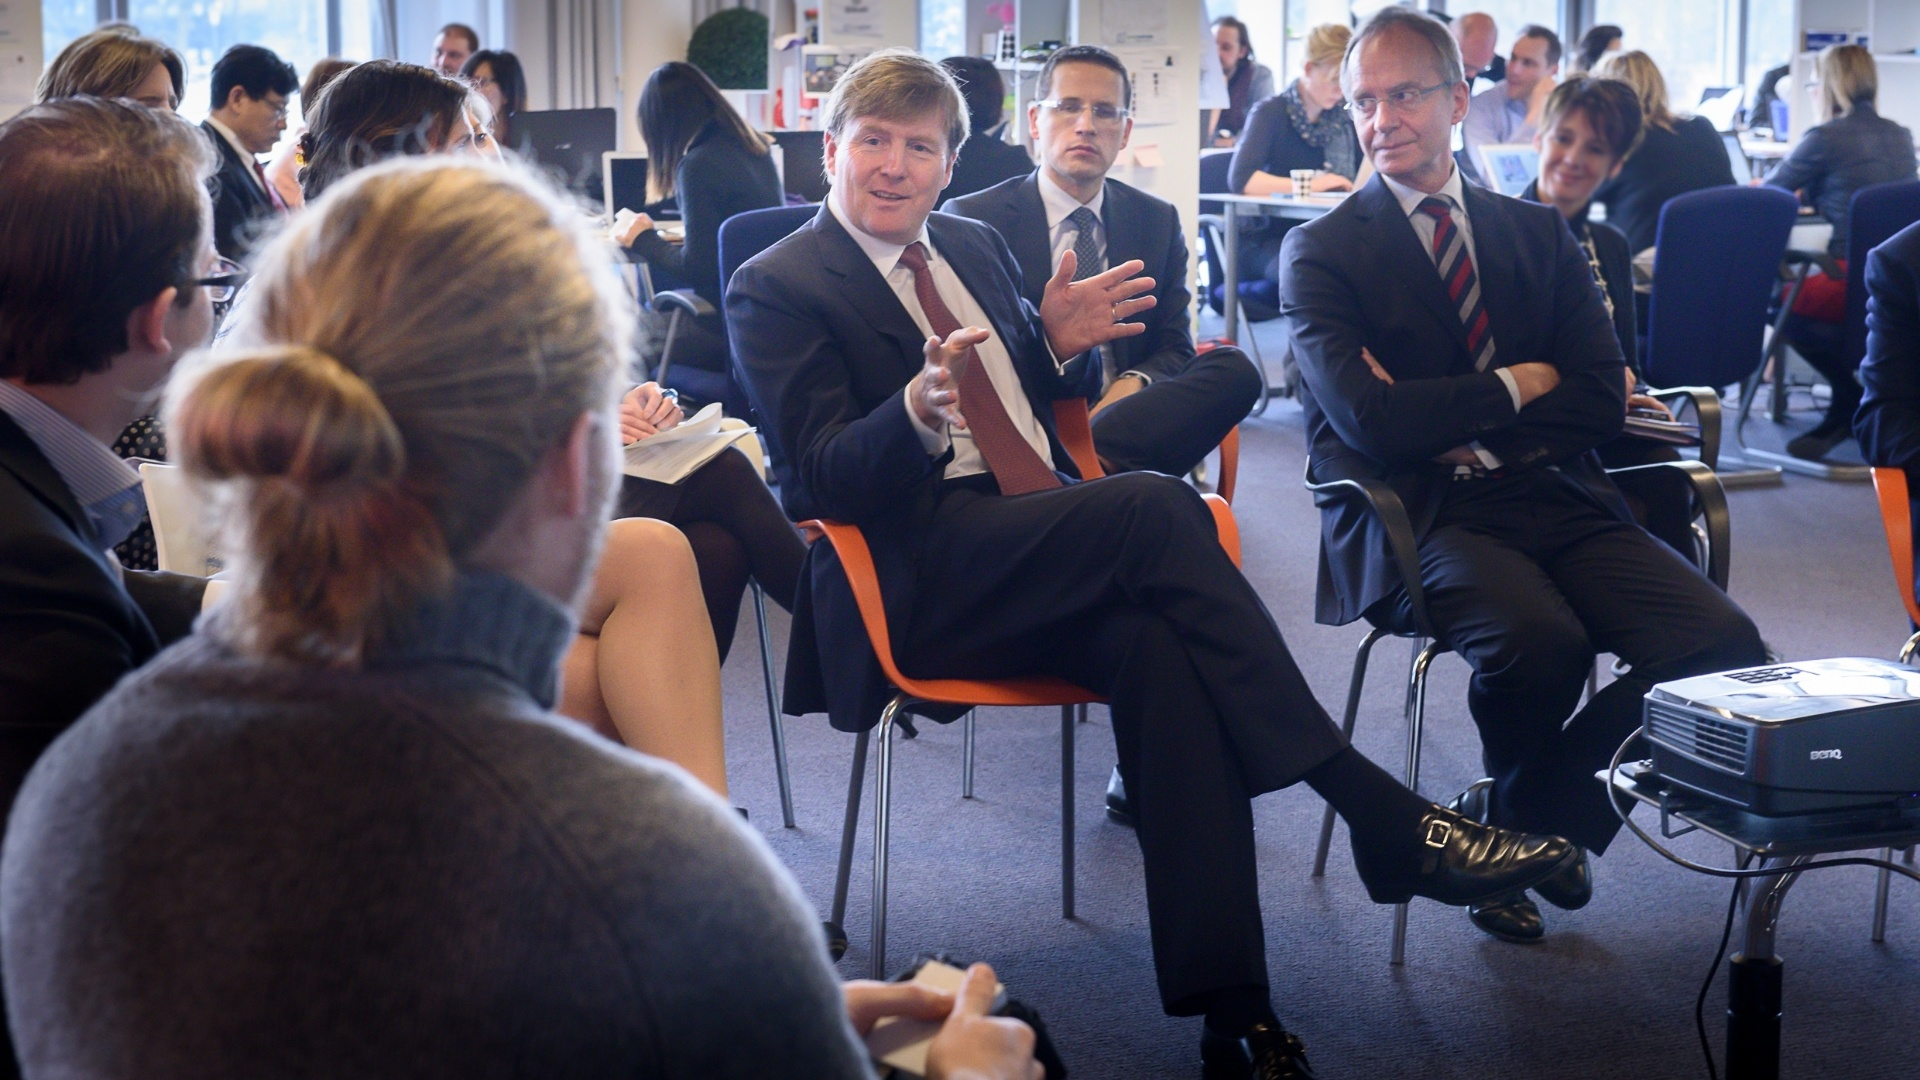 His Majesty King Willem-Alexander visited High Tech Campus Eindhoven for Startupbootcamp HighTechXL on Tuesday, 3 February, accompanied by Minister Kamp of Economic Affairs.